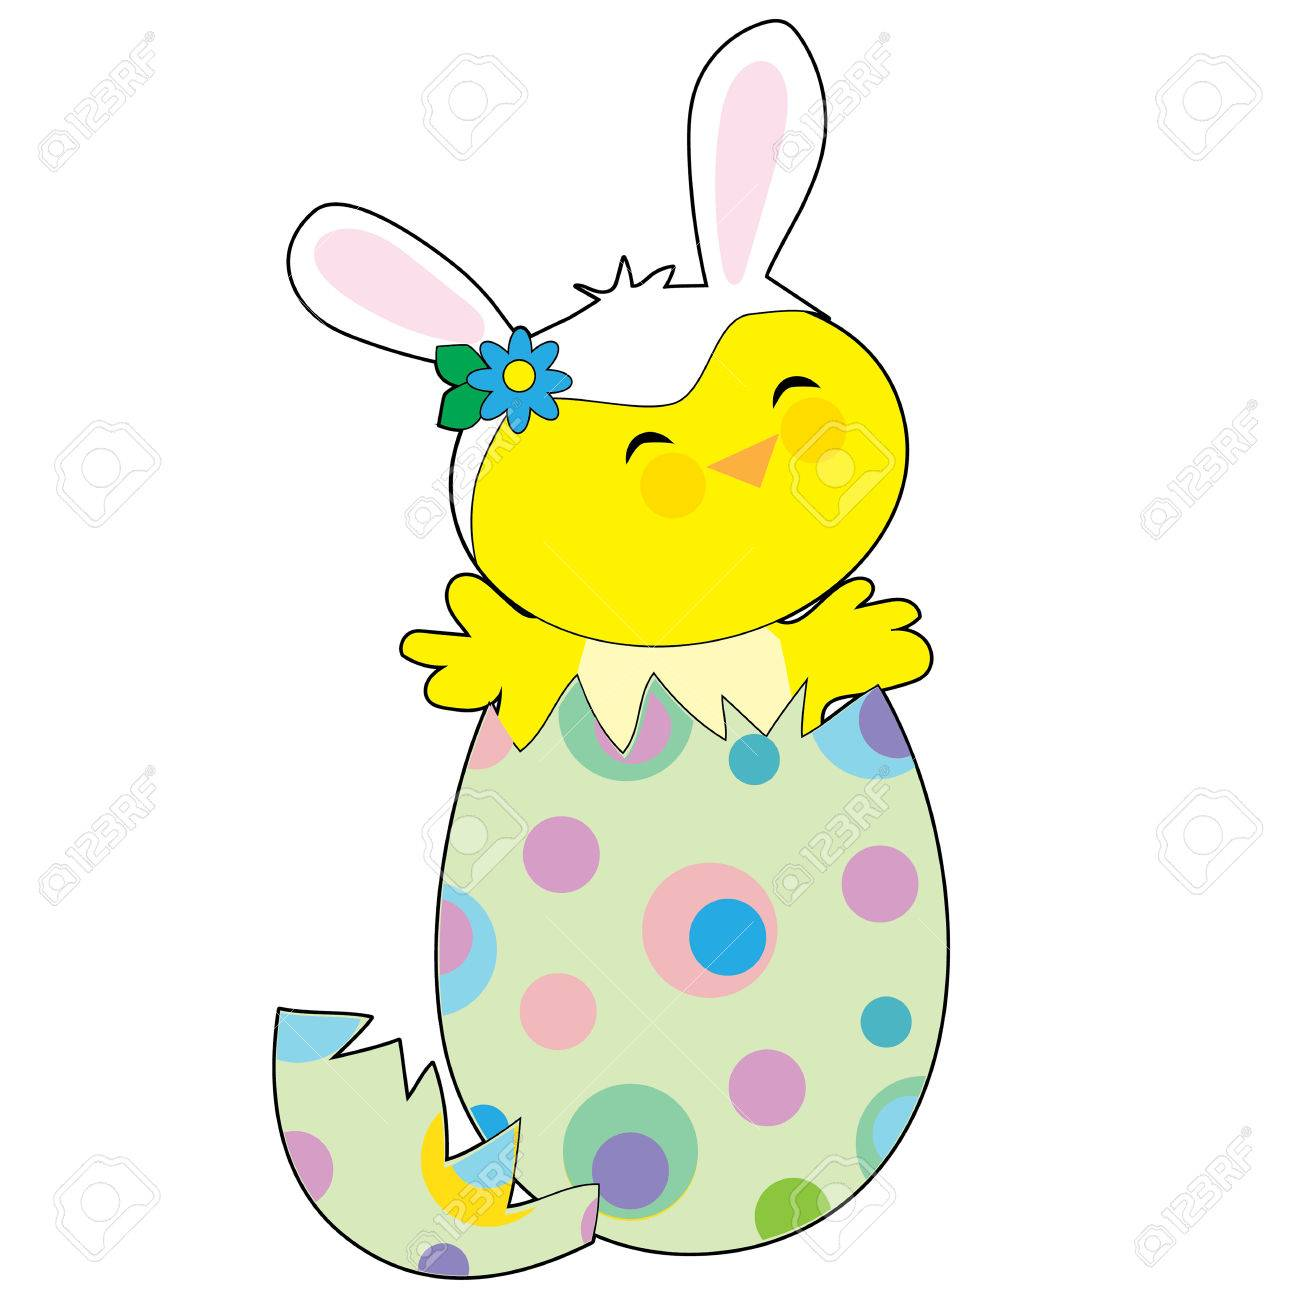 A little chick popping out of a spotted Easter egg wearing a hat with bunny ears - 54672194